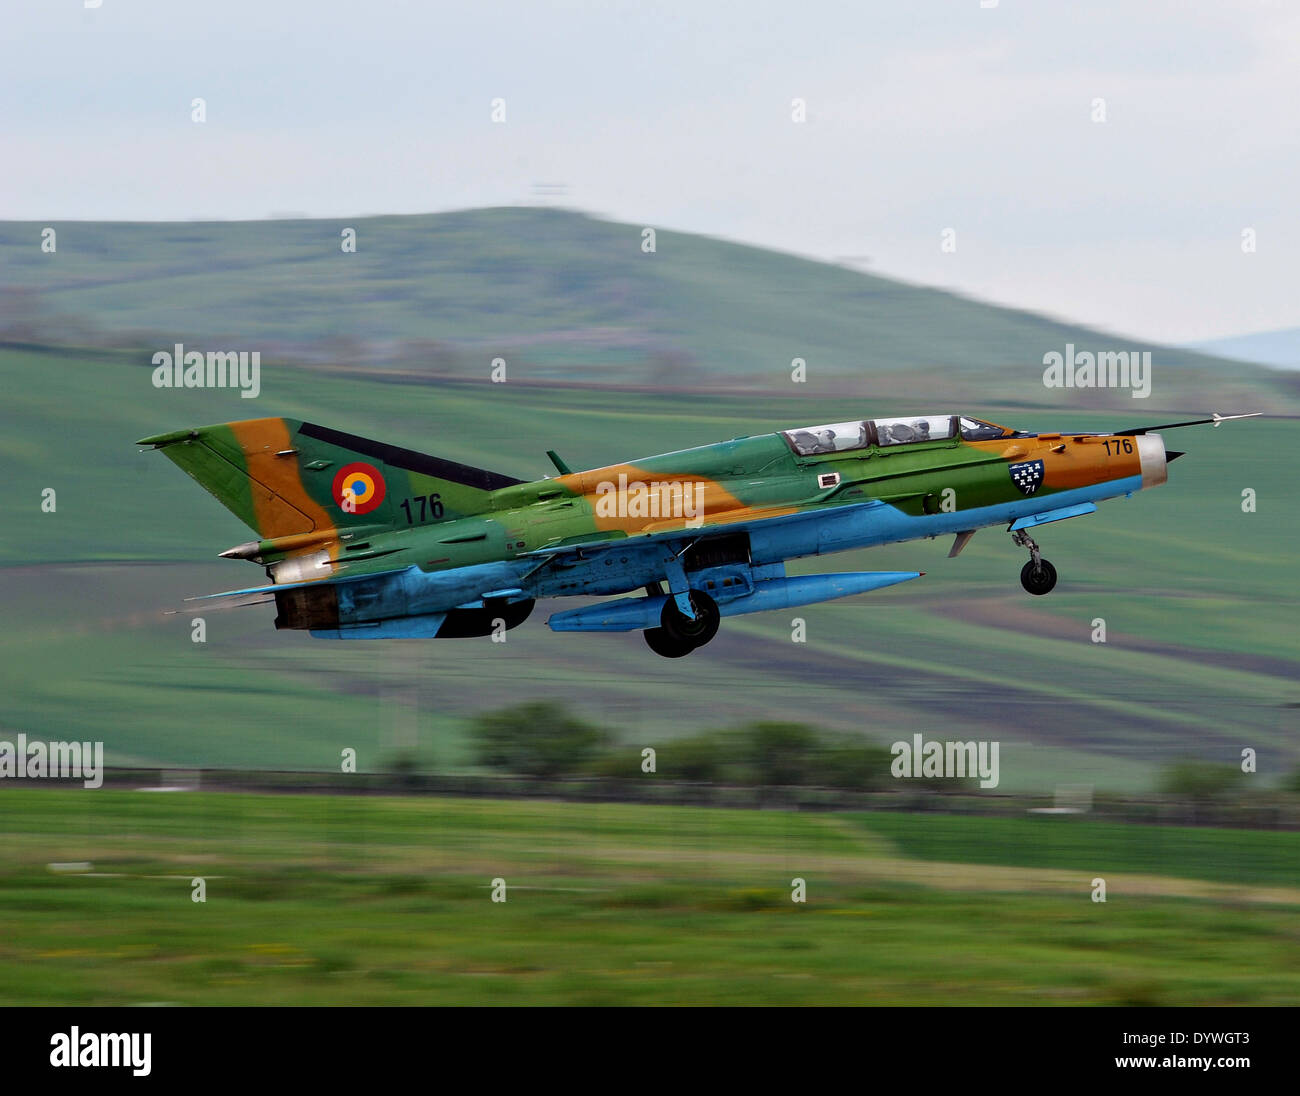 A Romanian Air Force MiG-21 Lancer fighter aircraft takes off during exercise Dacian Viper April 17, 2014 in Campia Turzii, Romania. Dacian Viper is a bilateral air exercise between the US Air Force and the Romanian Air Force. - Stock Image